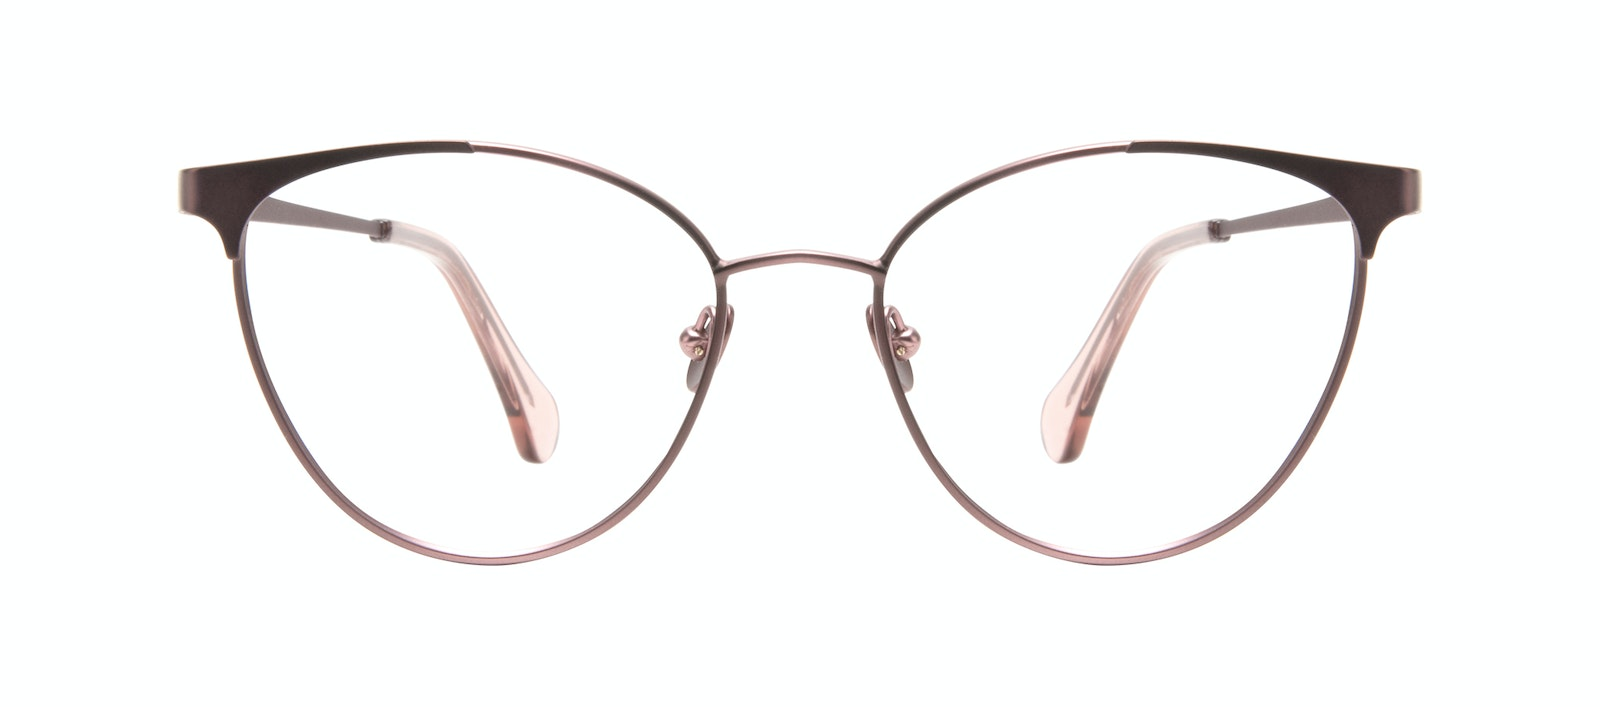 Affordable Fashion Glasses Cat Eye Eyeglasses Women Edgy Pink Terra Front